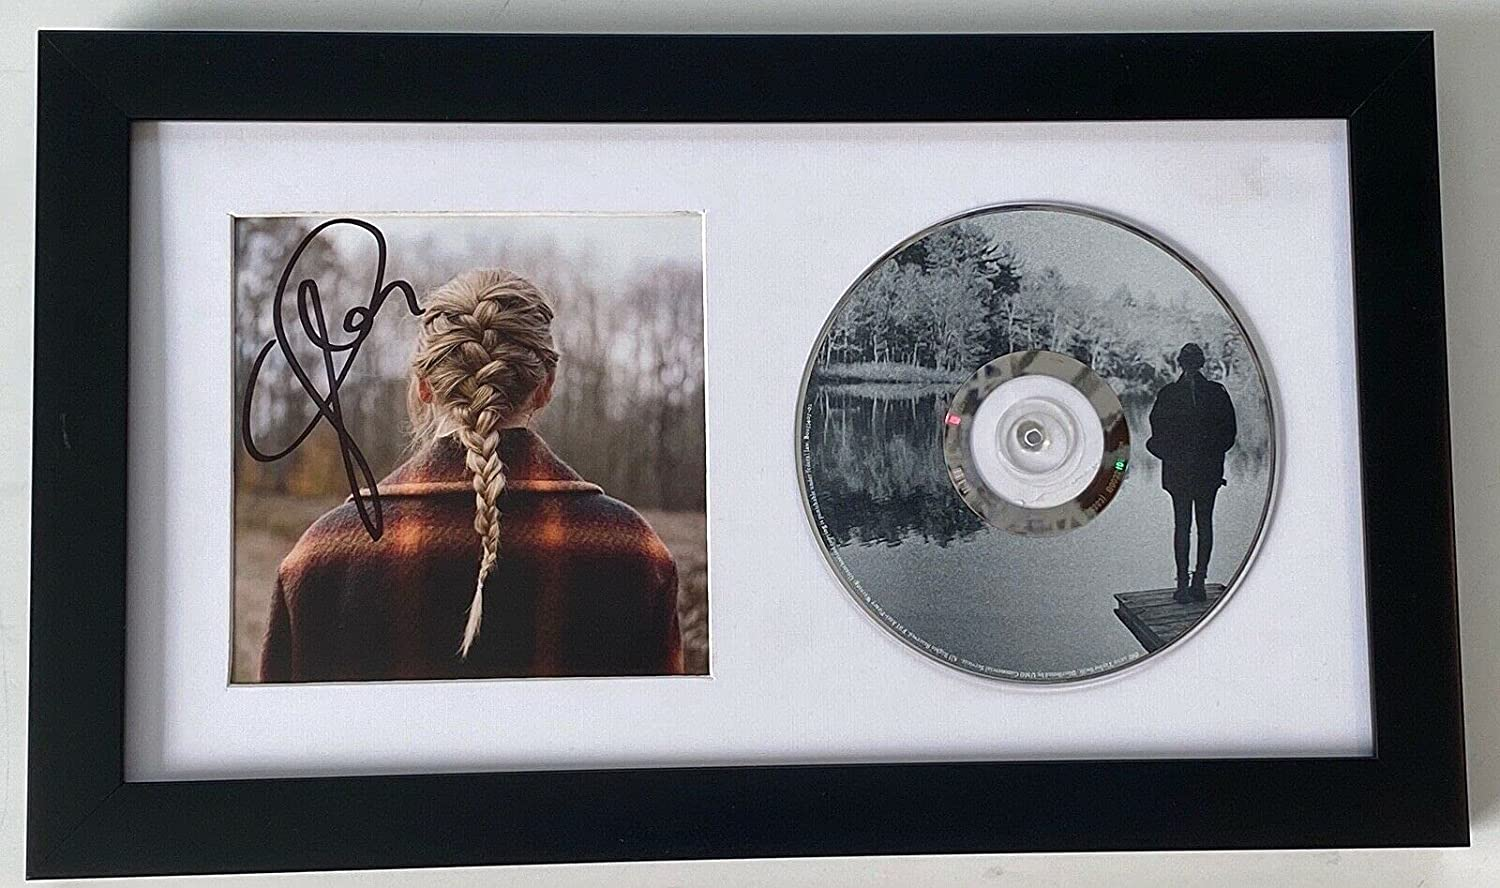 Taylor Swift Signed Autographed Evermore Booklet CD Displ Popularity Framed Max 55% OFF